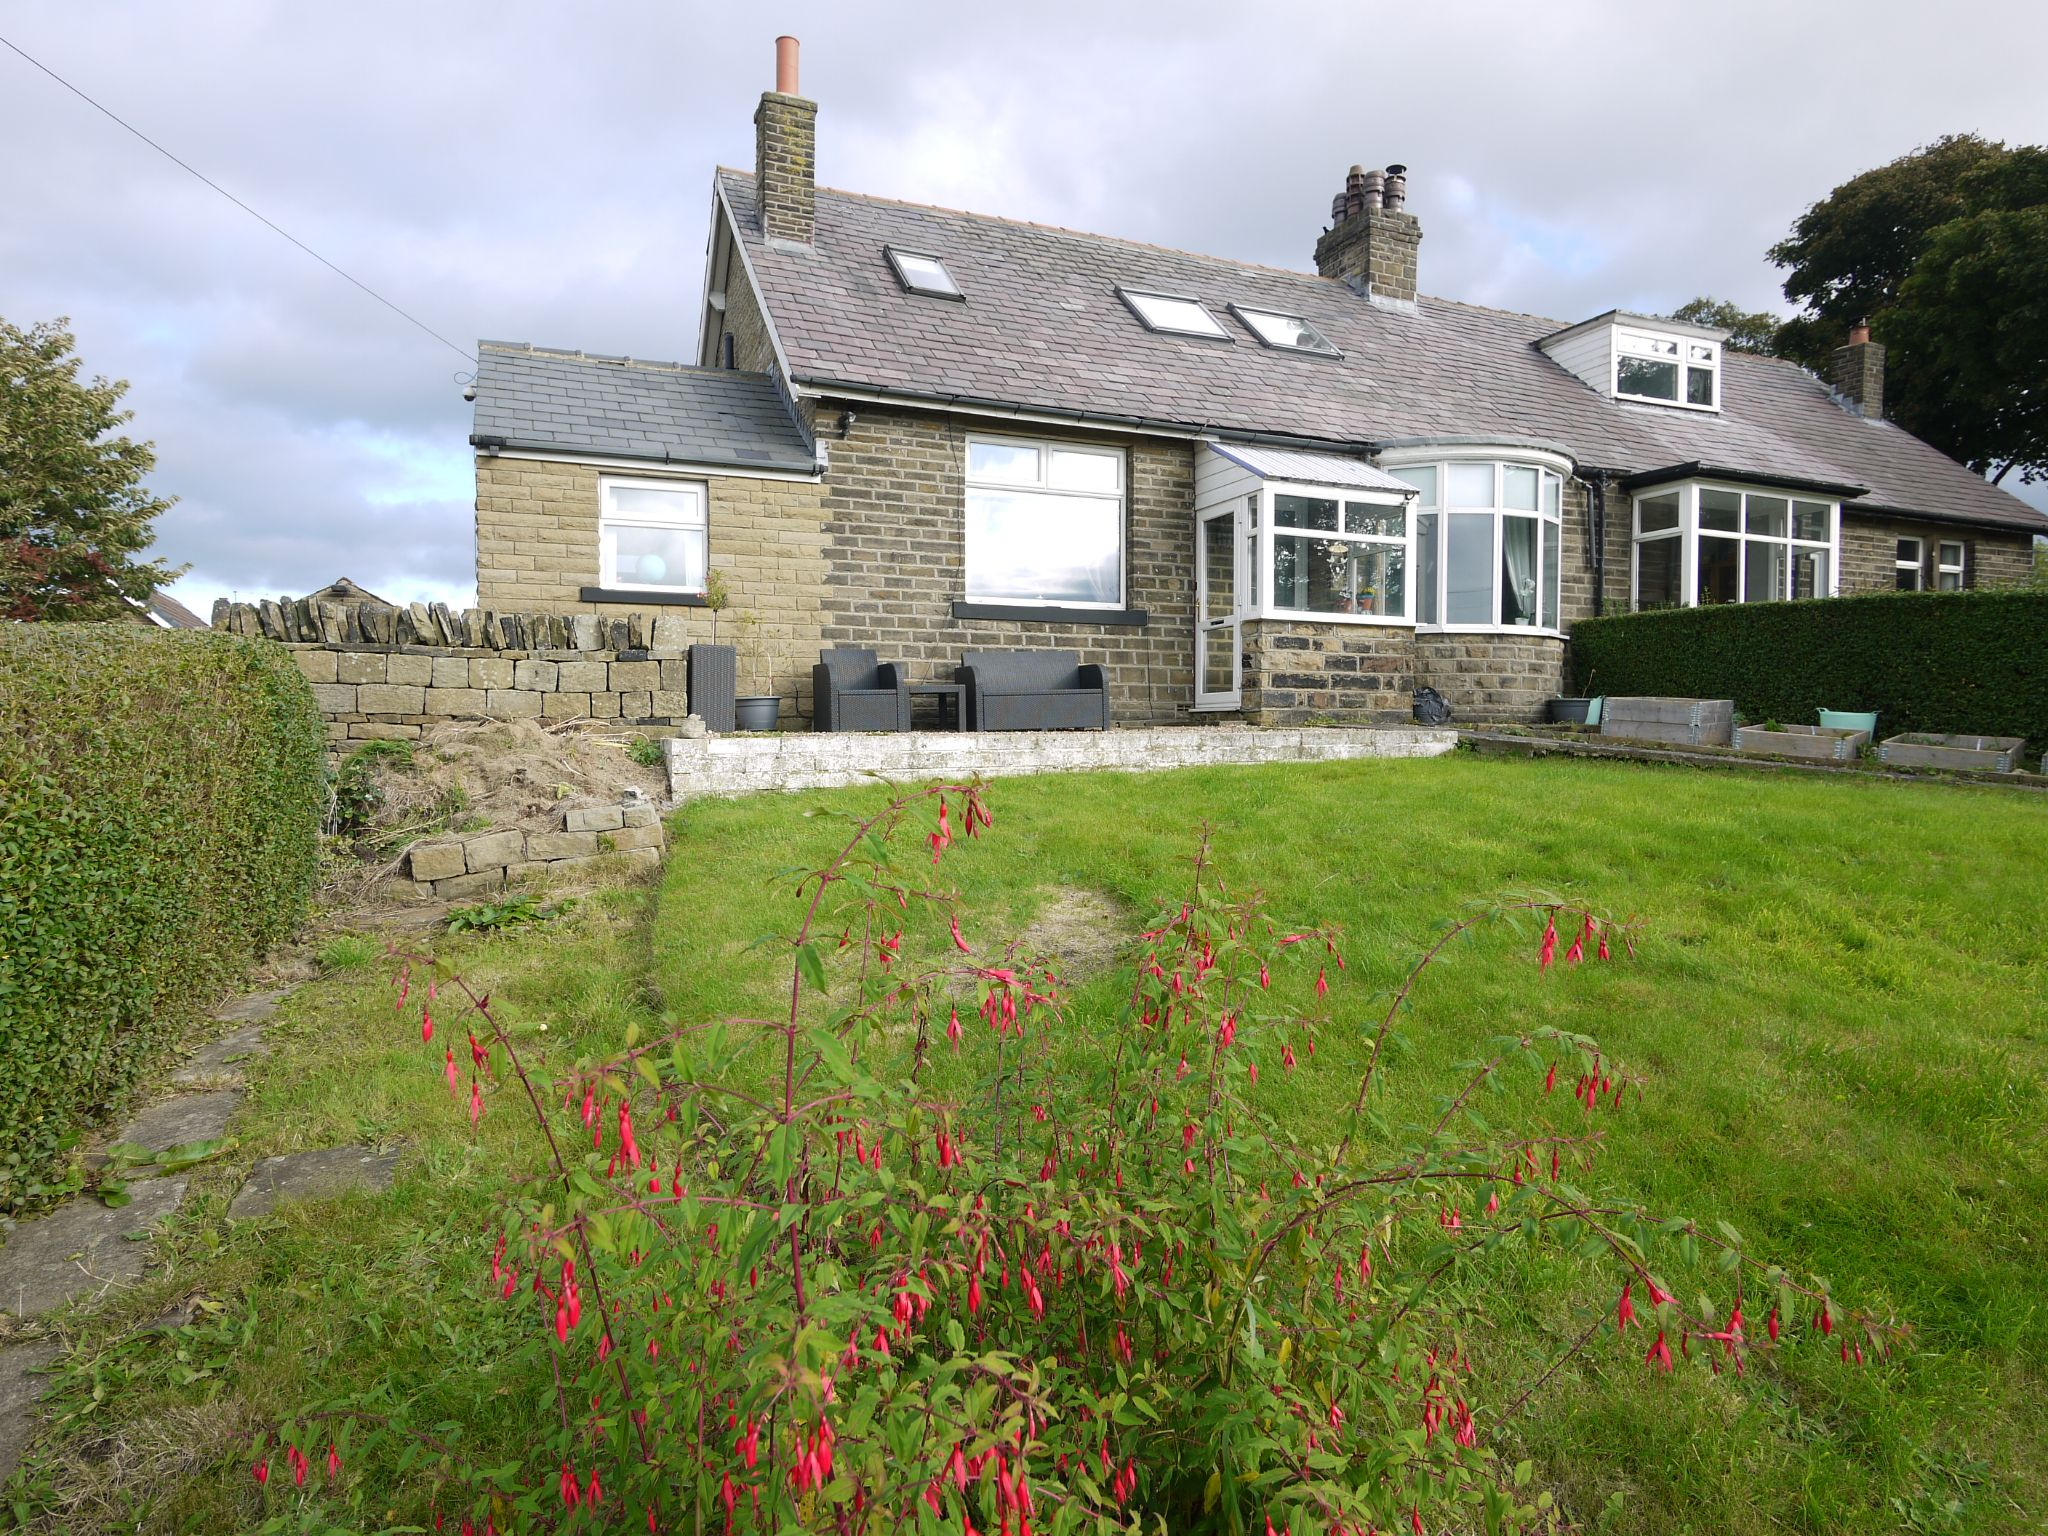 3 bedroom semi-detached house For Sale in Brighouse - Photograph 1.